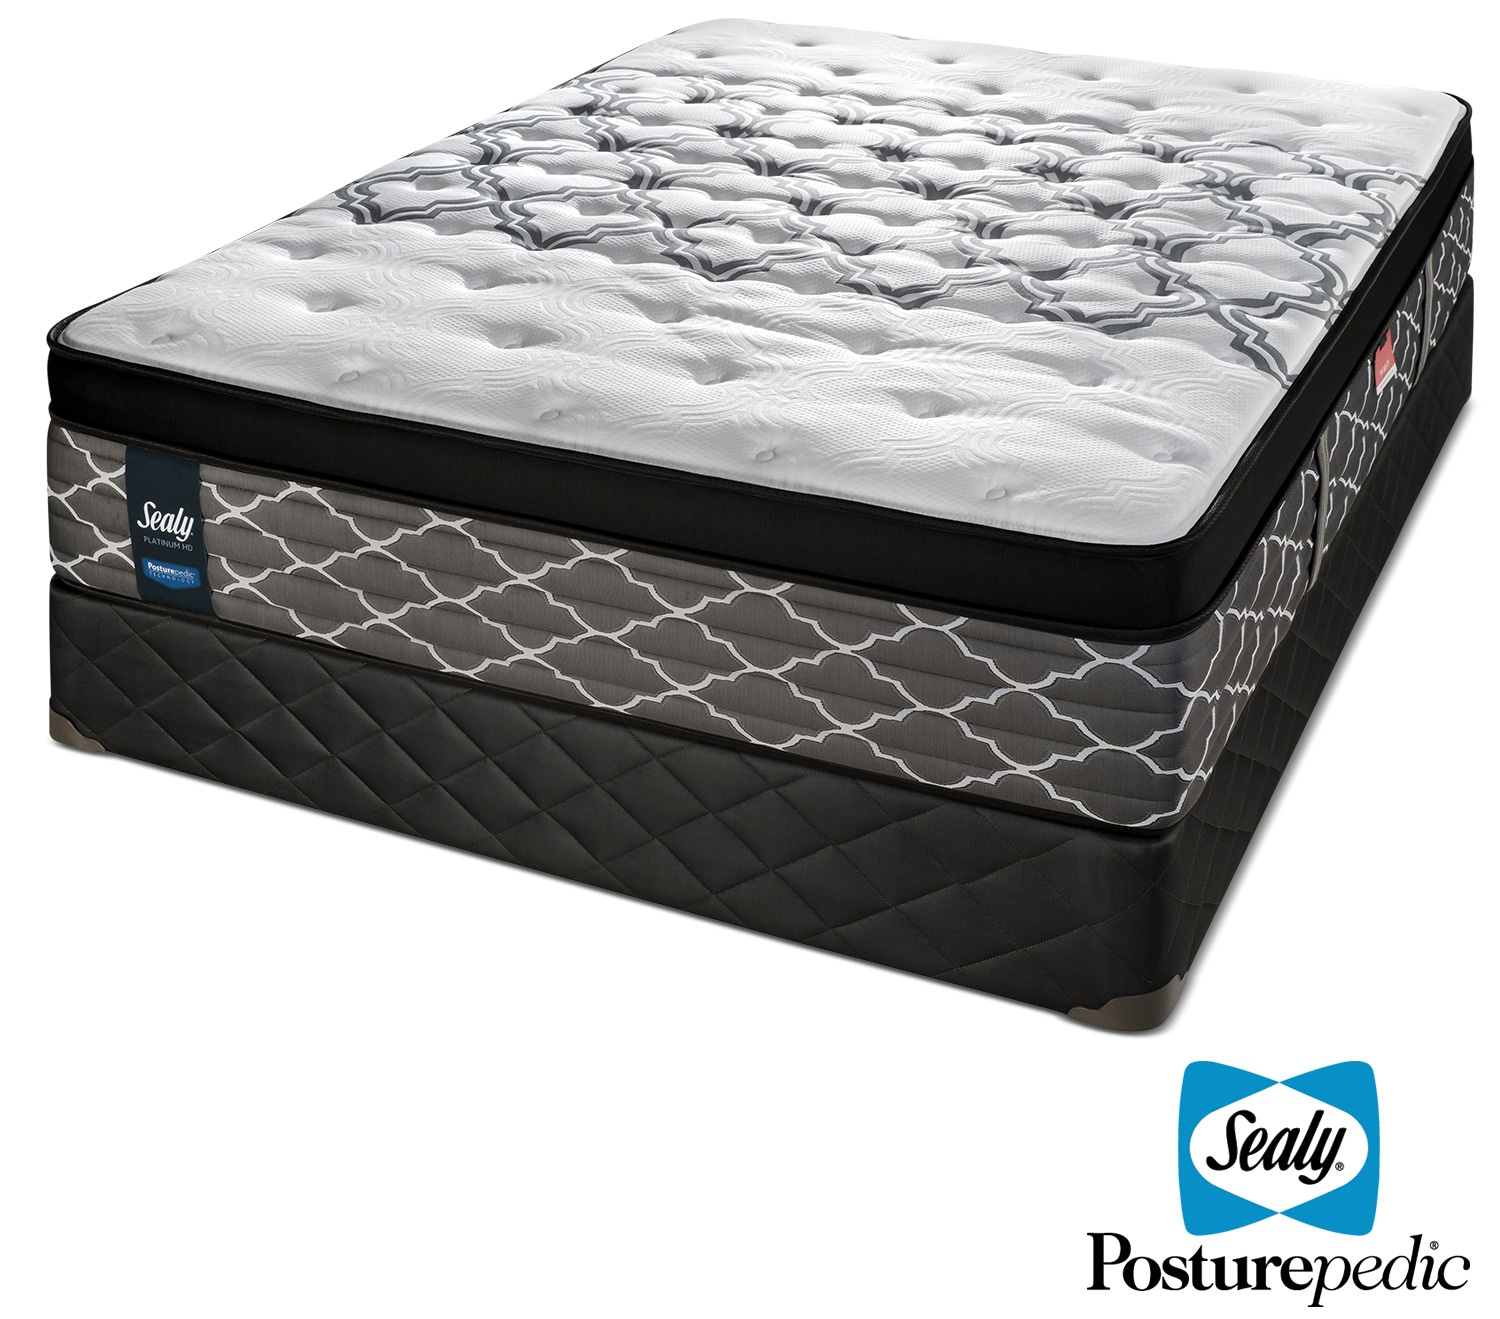 sealy dreamy night hybrid firm full mattress and boxspring set